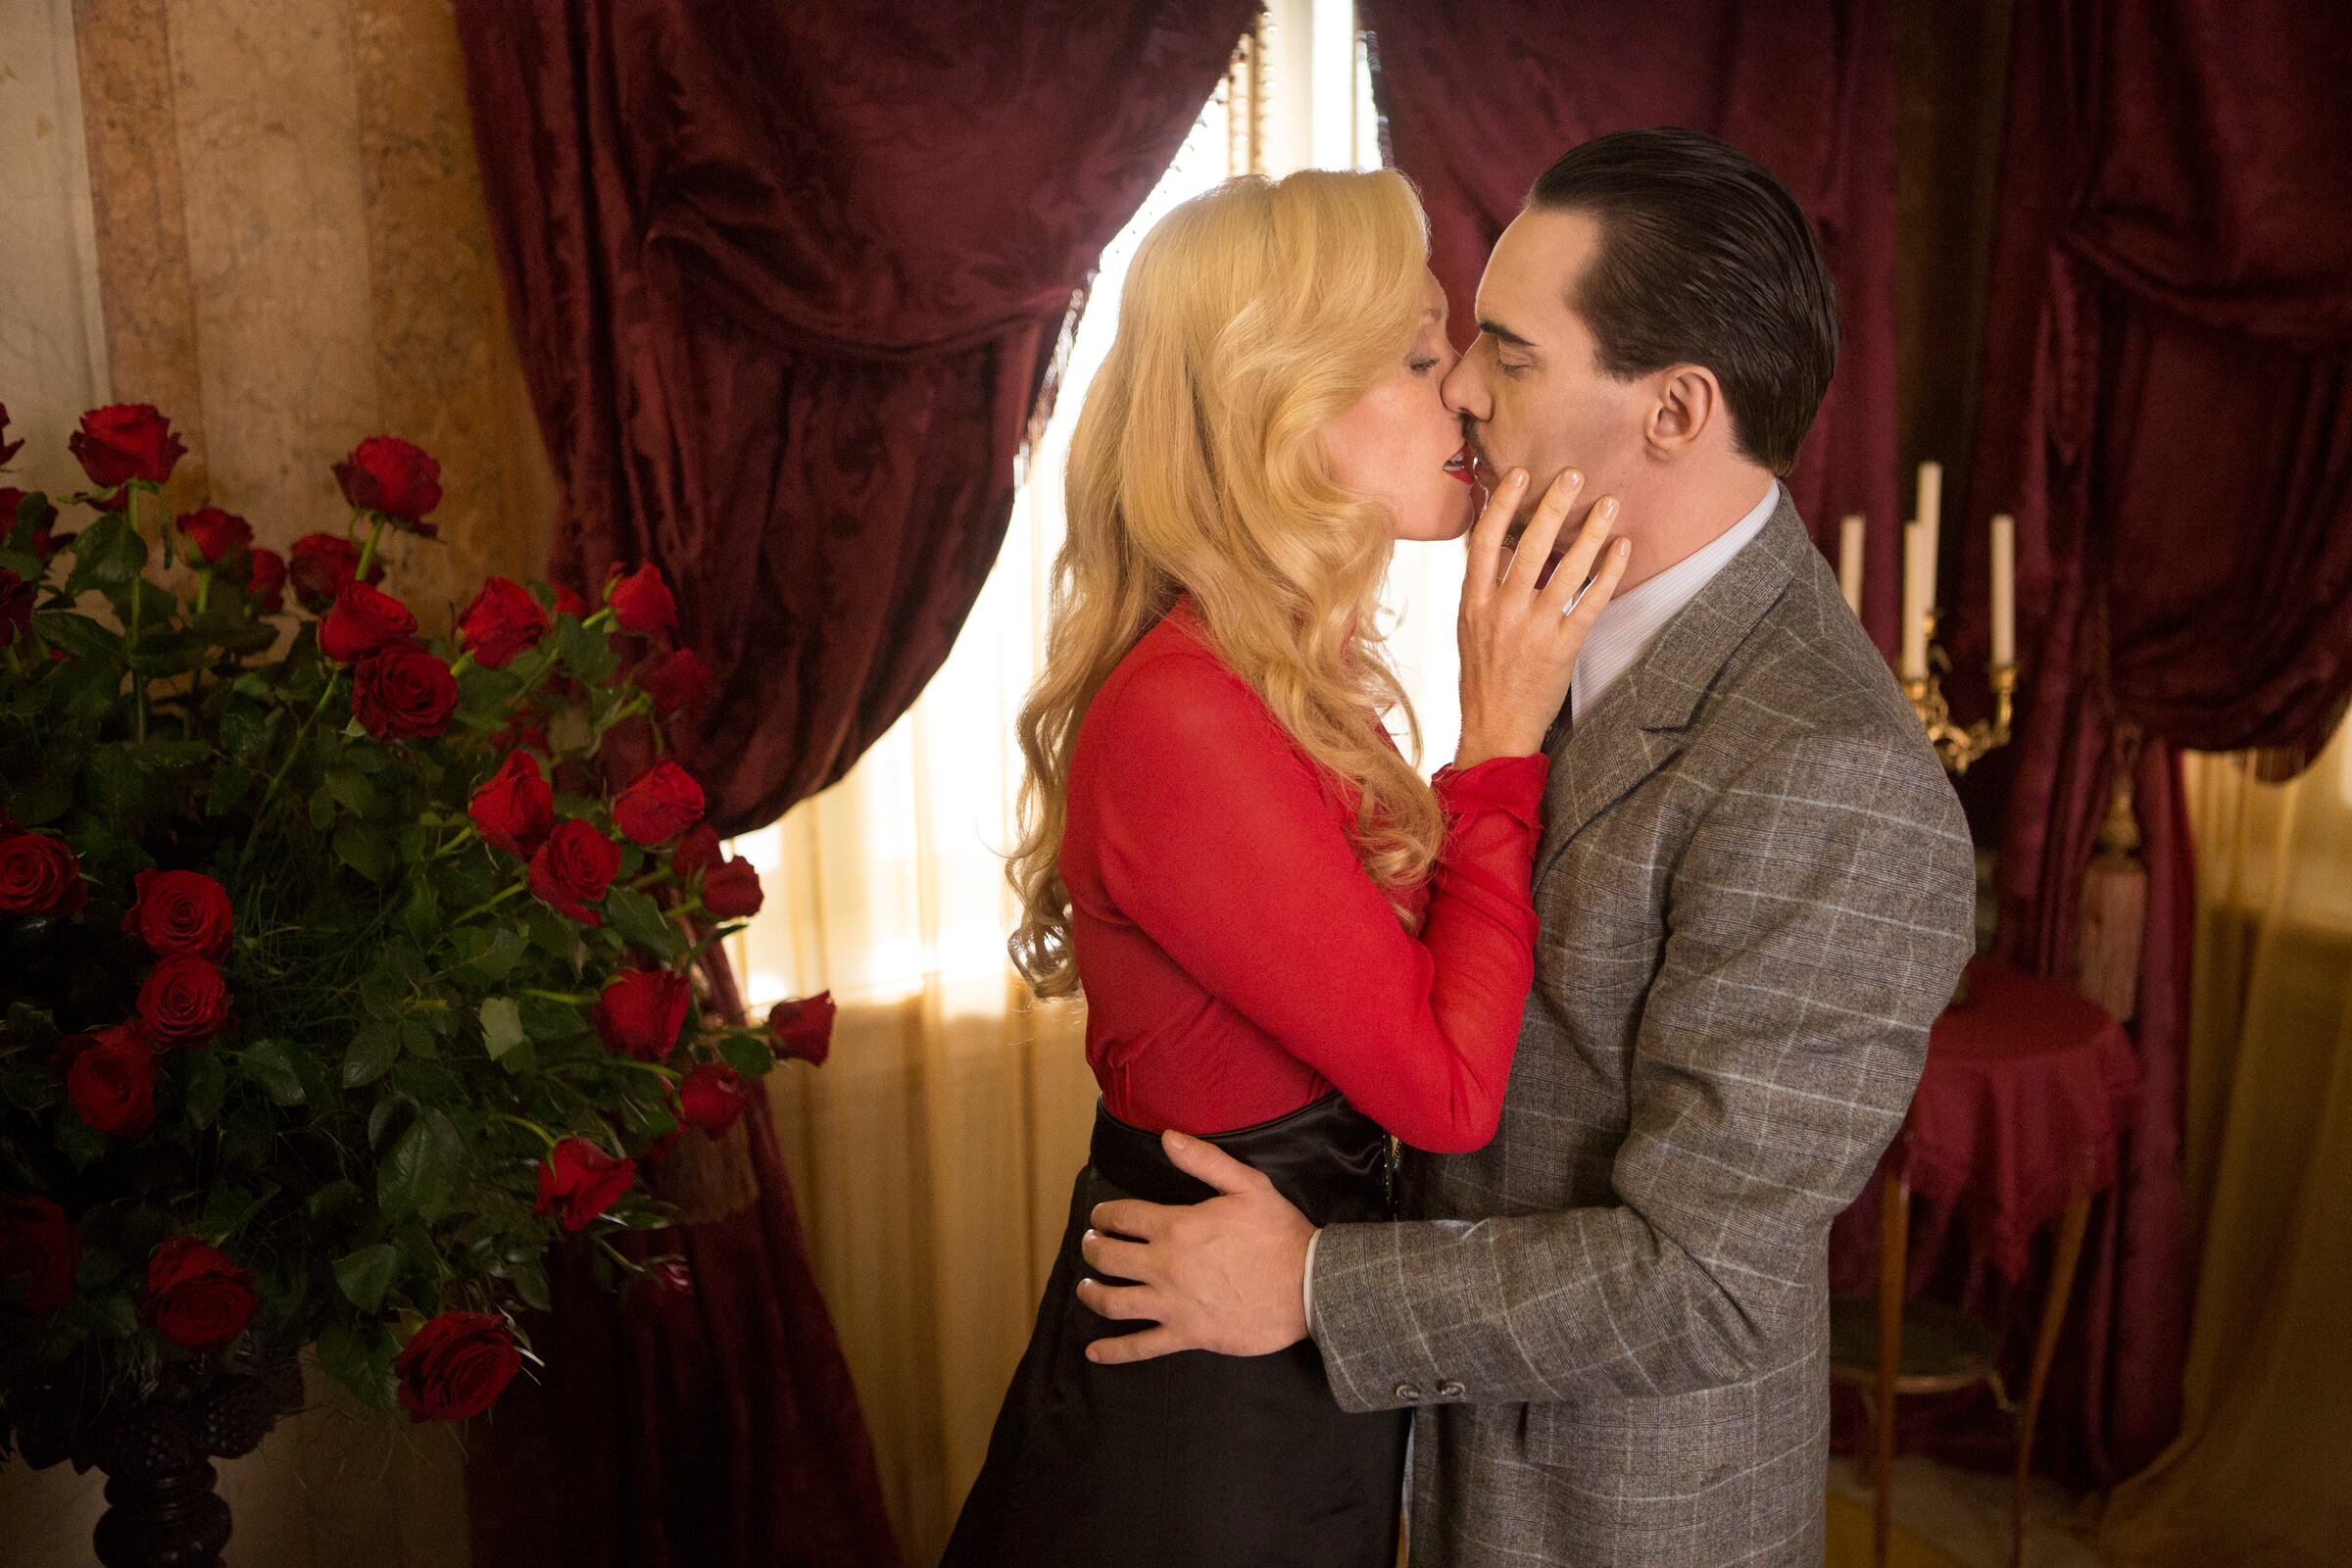 Pictured: (l-r) Victoria Smurfit as Lady Jayne Wetherby, Jonathan Rhys Meyers as Alexander Grayson